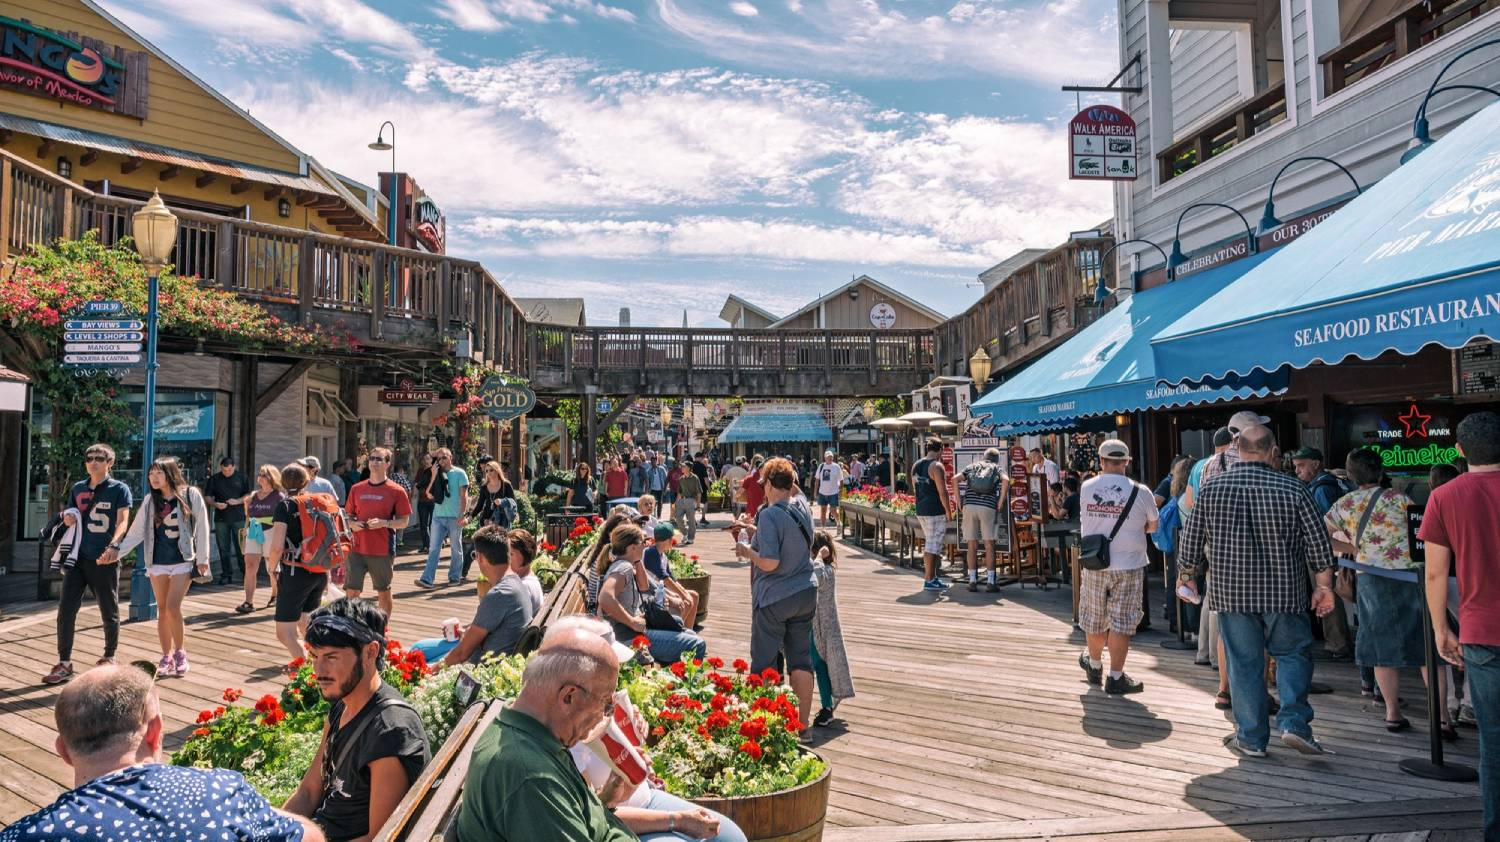 Pier 39 - Things To Do In San Francisco